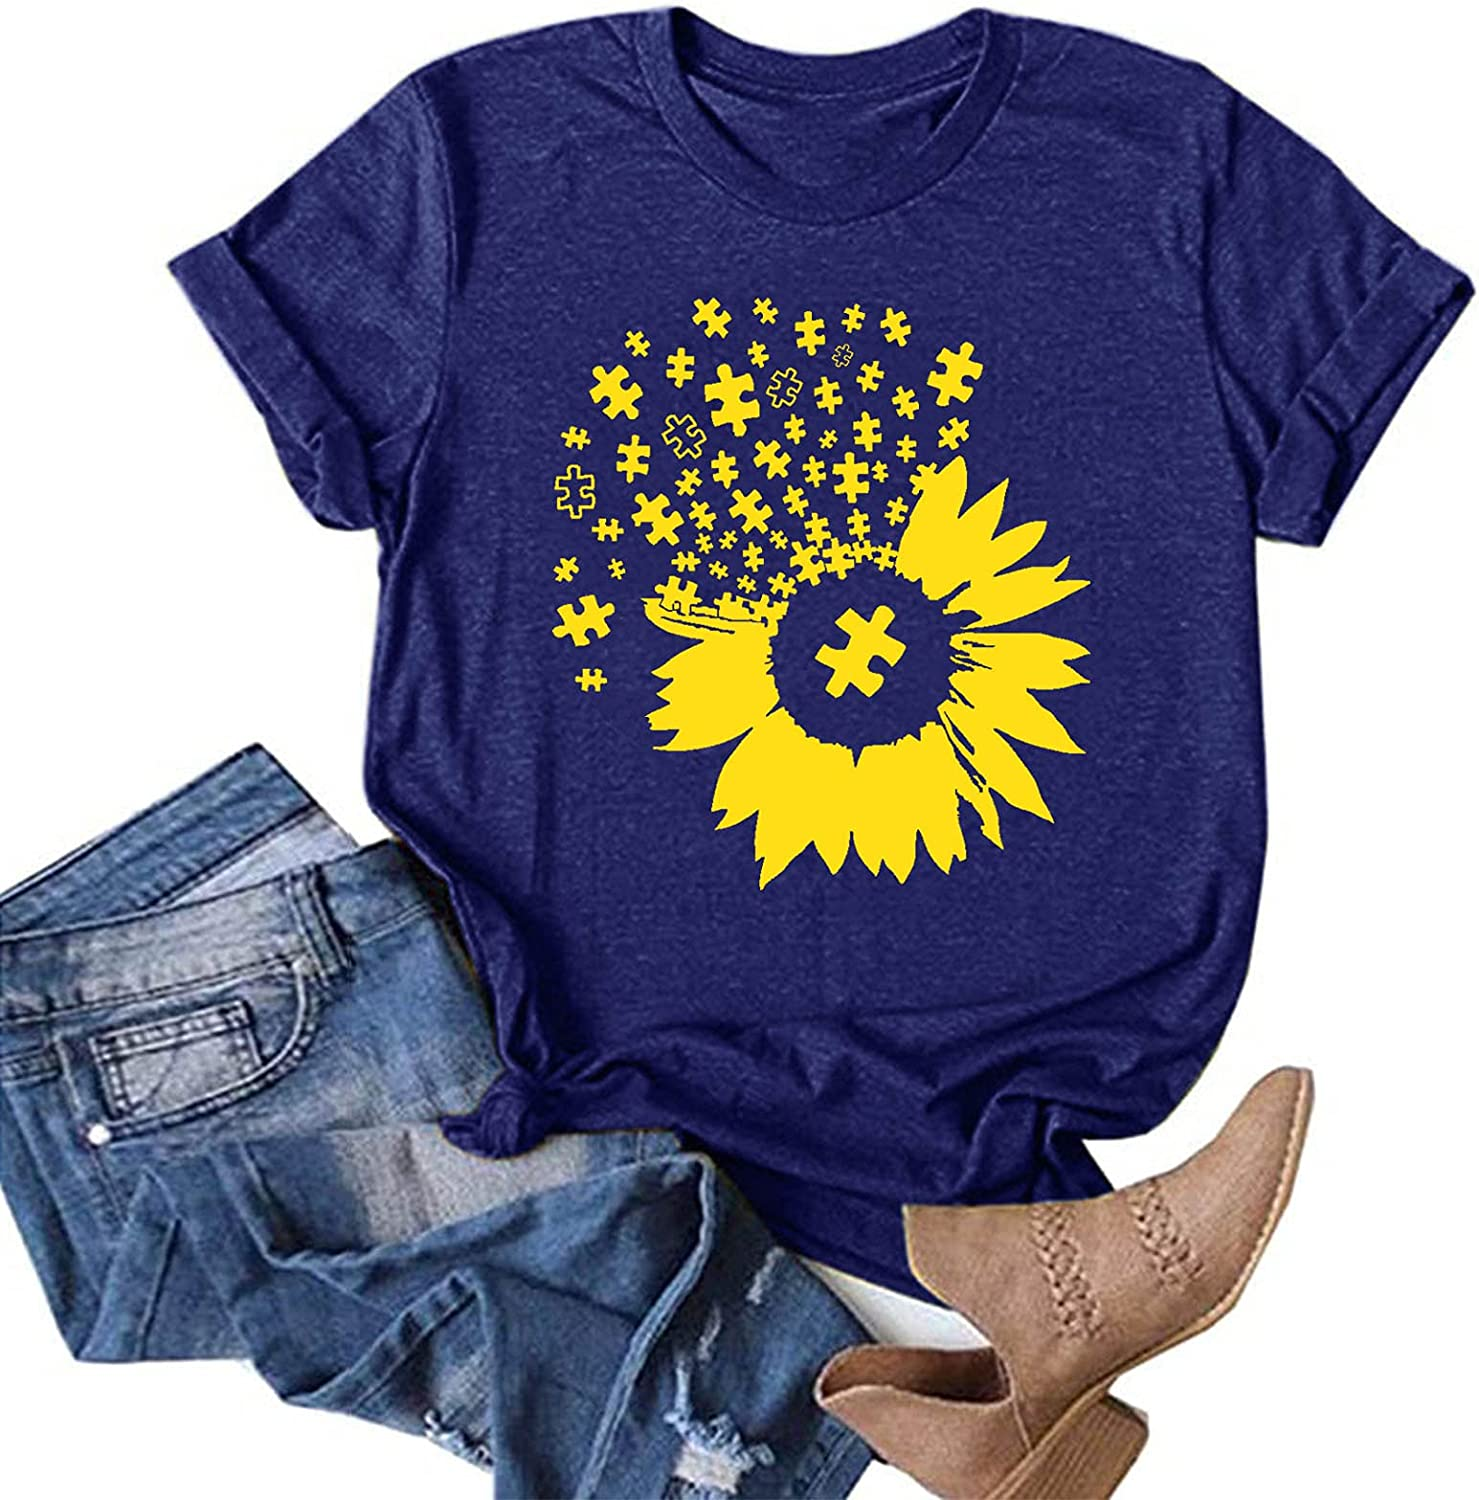 AODONG Summer Tops for Women Trendy, Women's Dandelion Printing Loose Blouses Casual Tunic Tees Funny Graphic T-Shirts